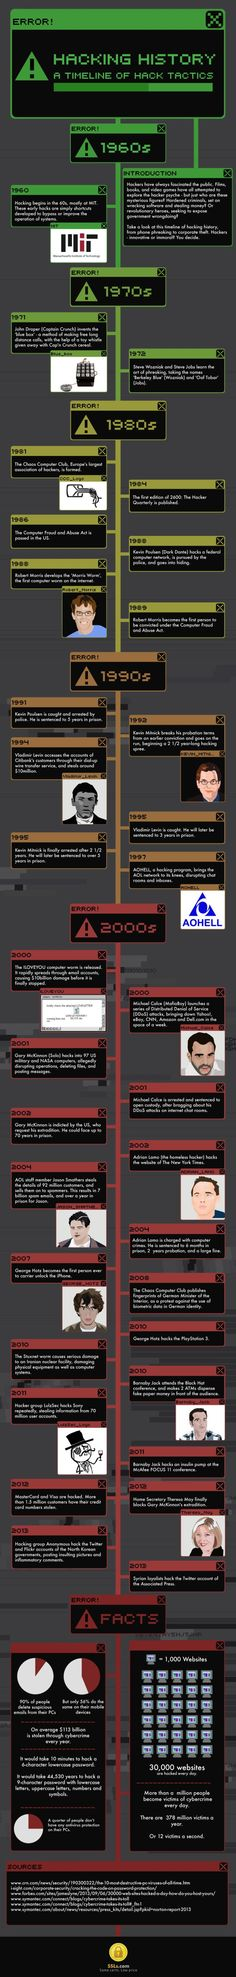 The History Of Hacking | Infographic